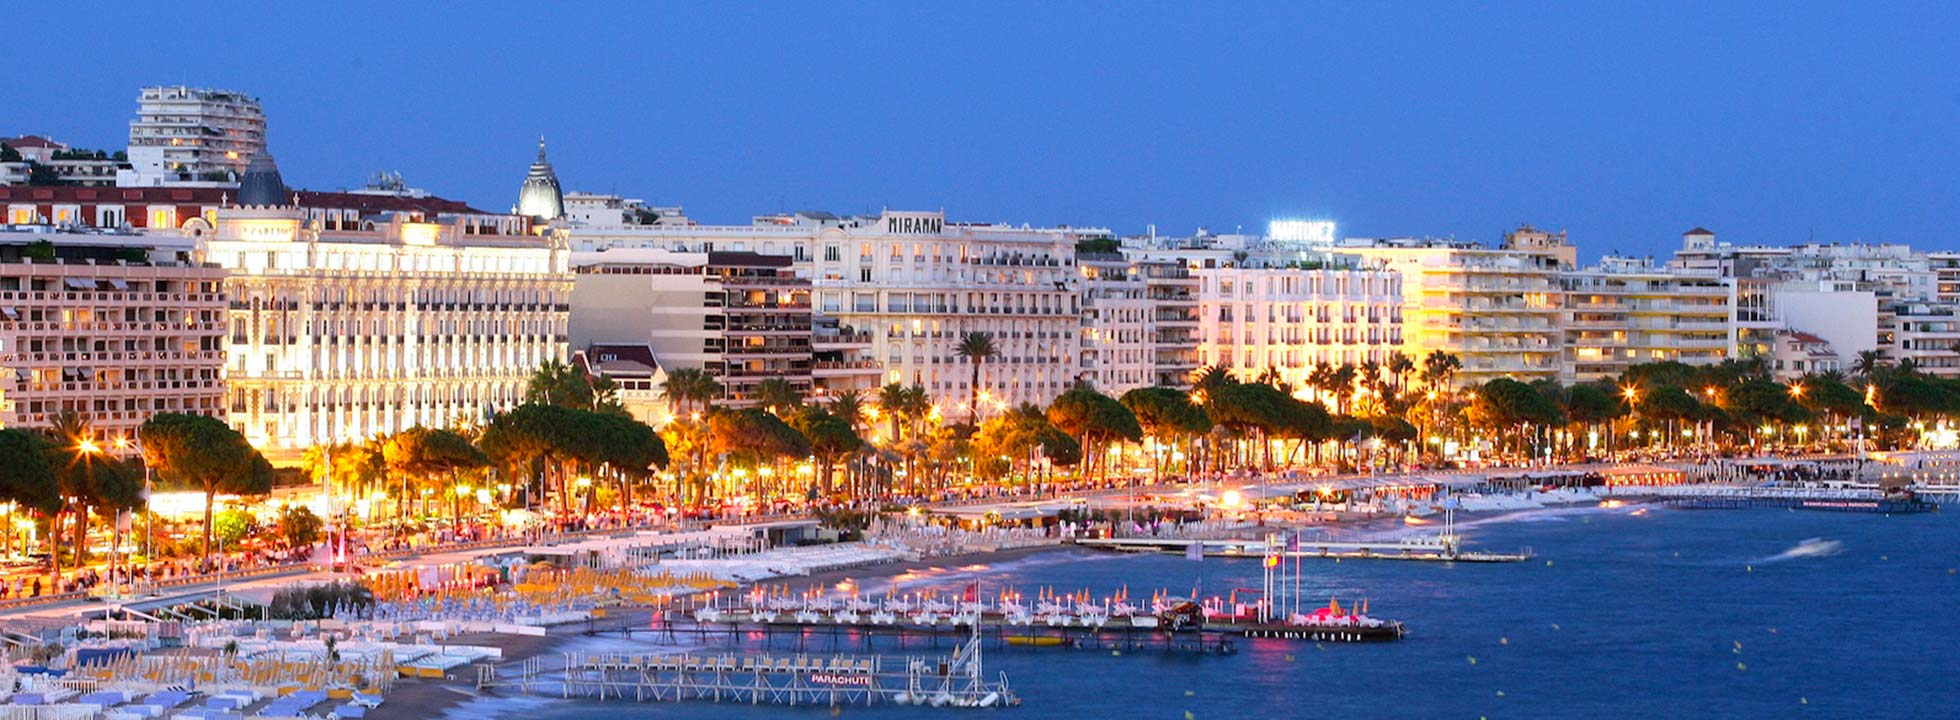 Appartements à Cannes - Côte d'Azur